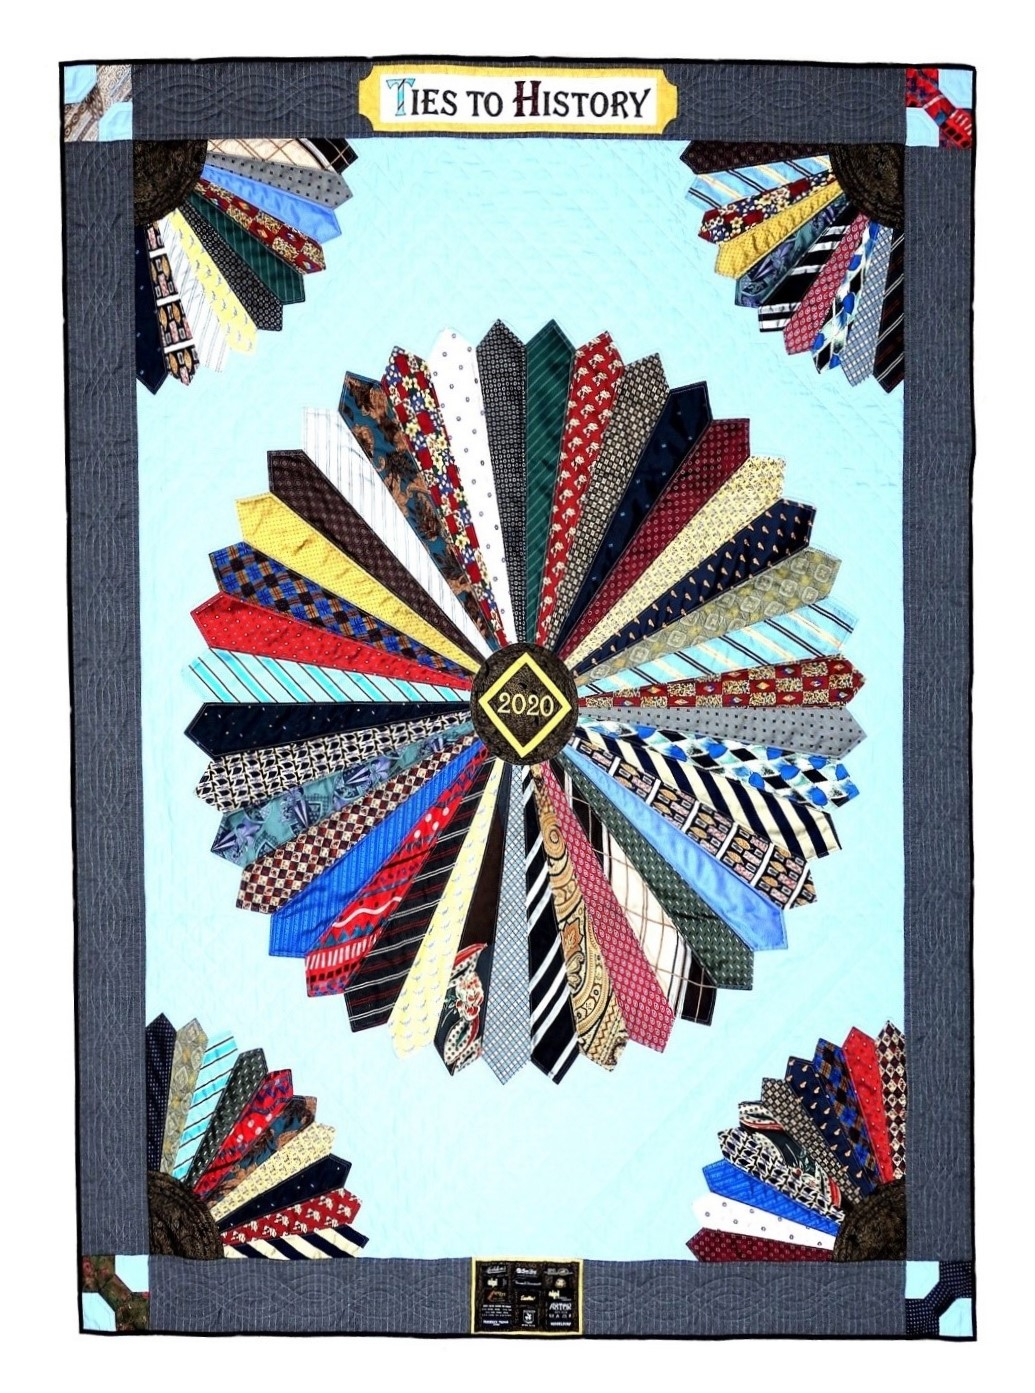 Quilt made by Beverley Bennett for the Ties to History exhibition. The main part of the quilt is made of men's ties.